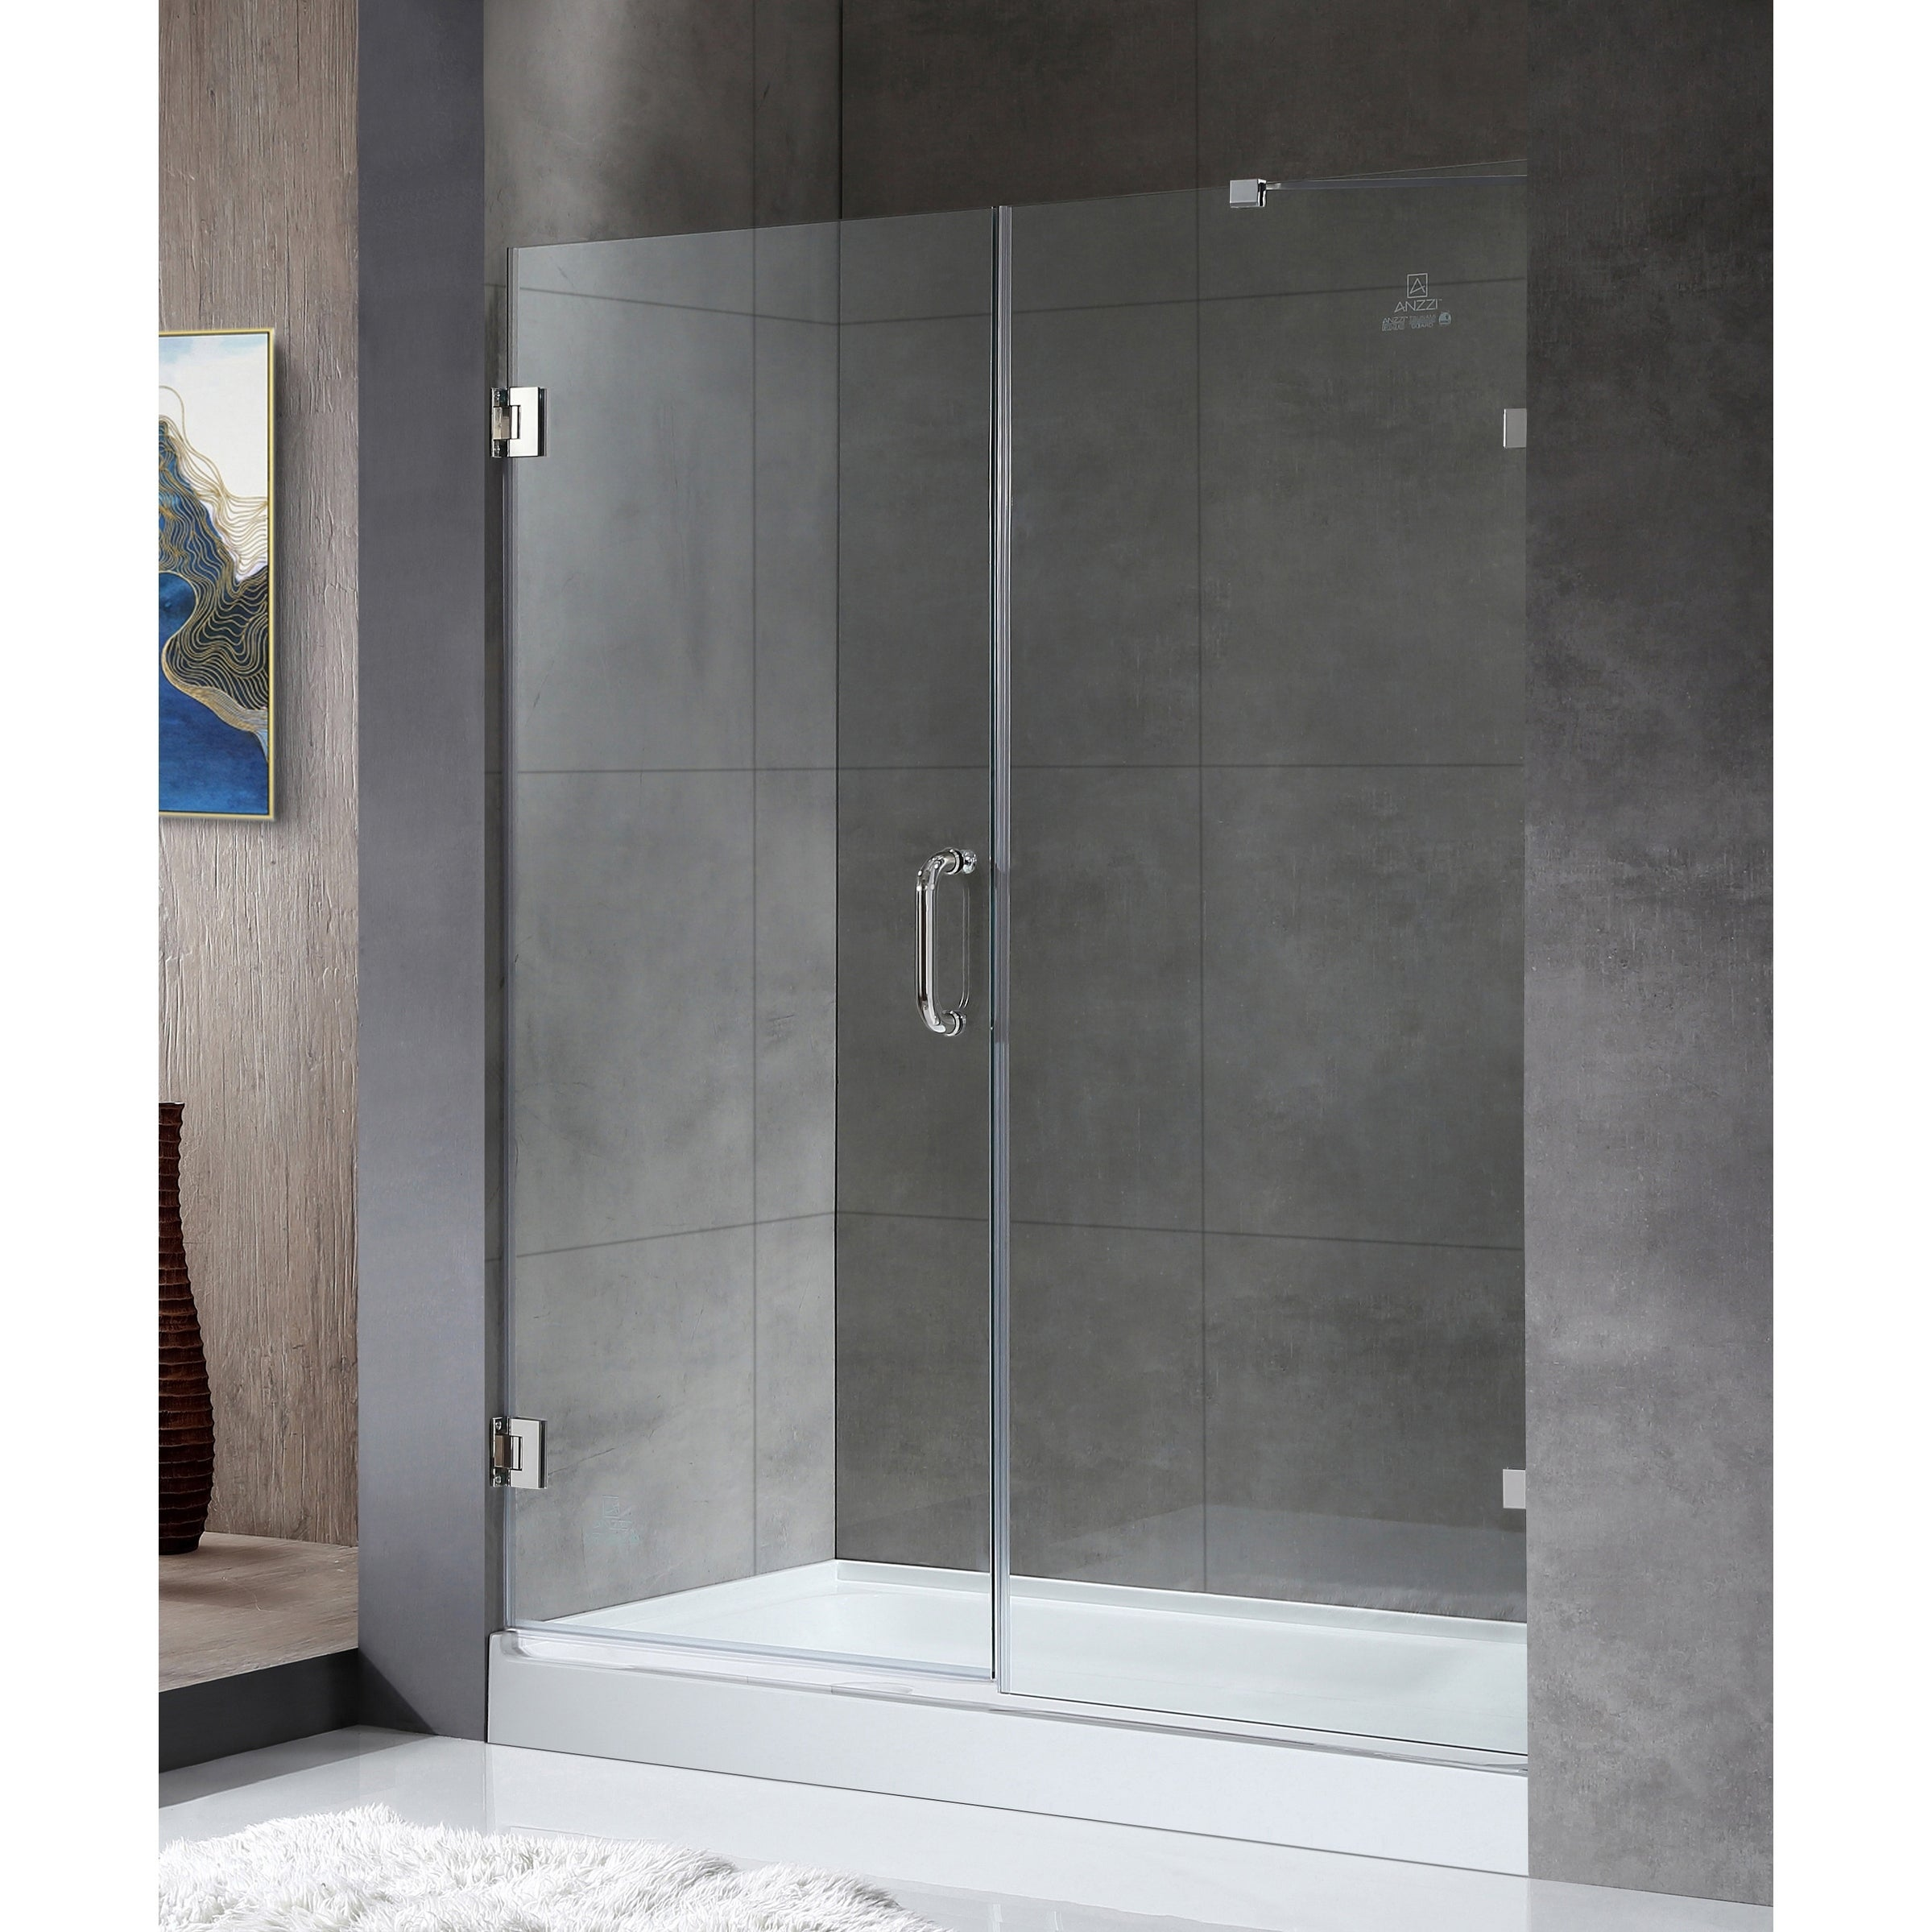 Anzzi Consort 58 5 X 72 Frameless Hinged Alcove Shower Door In Polished Chrome